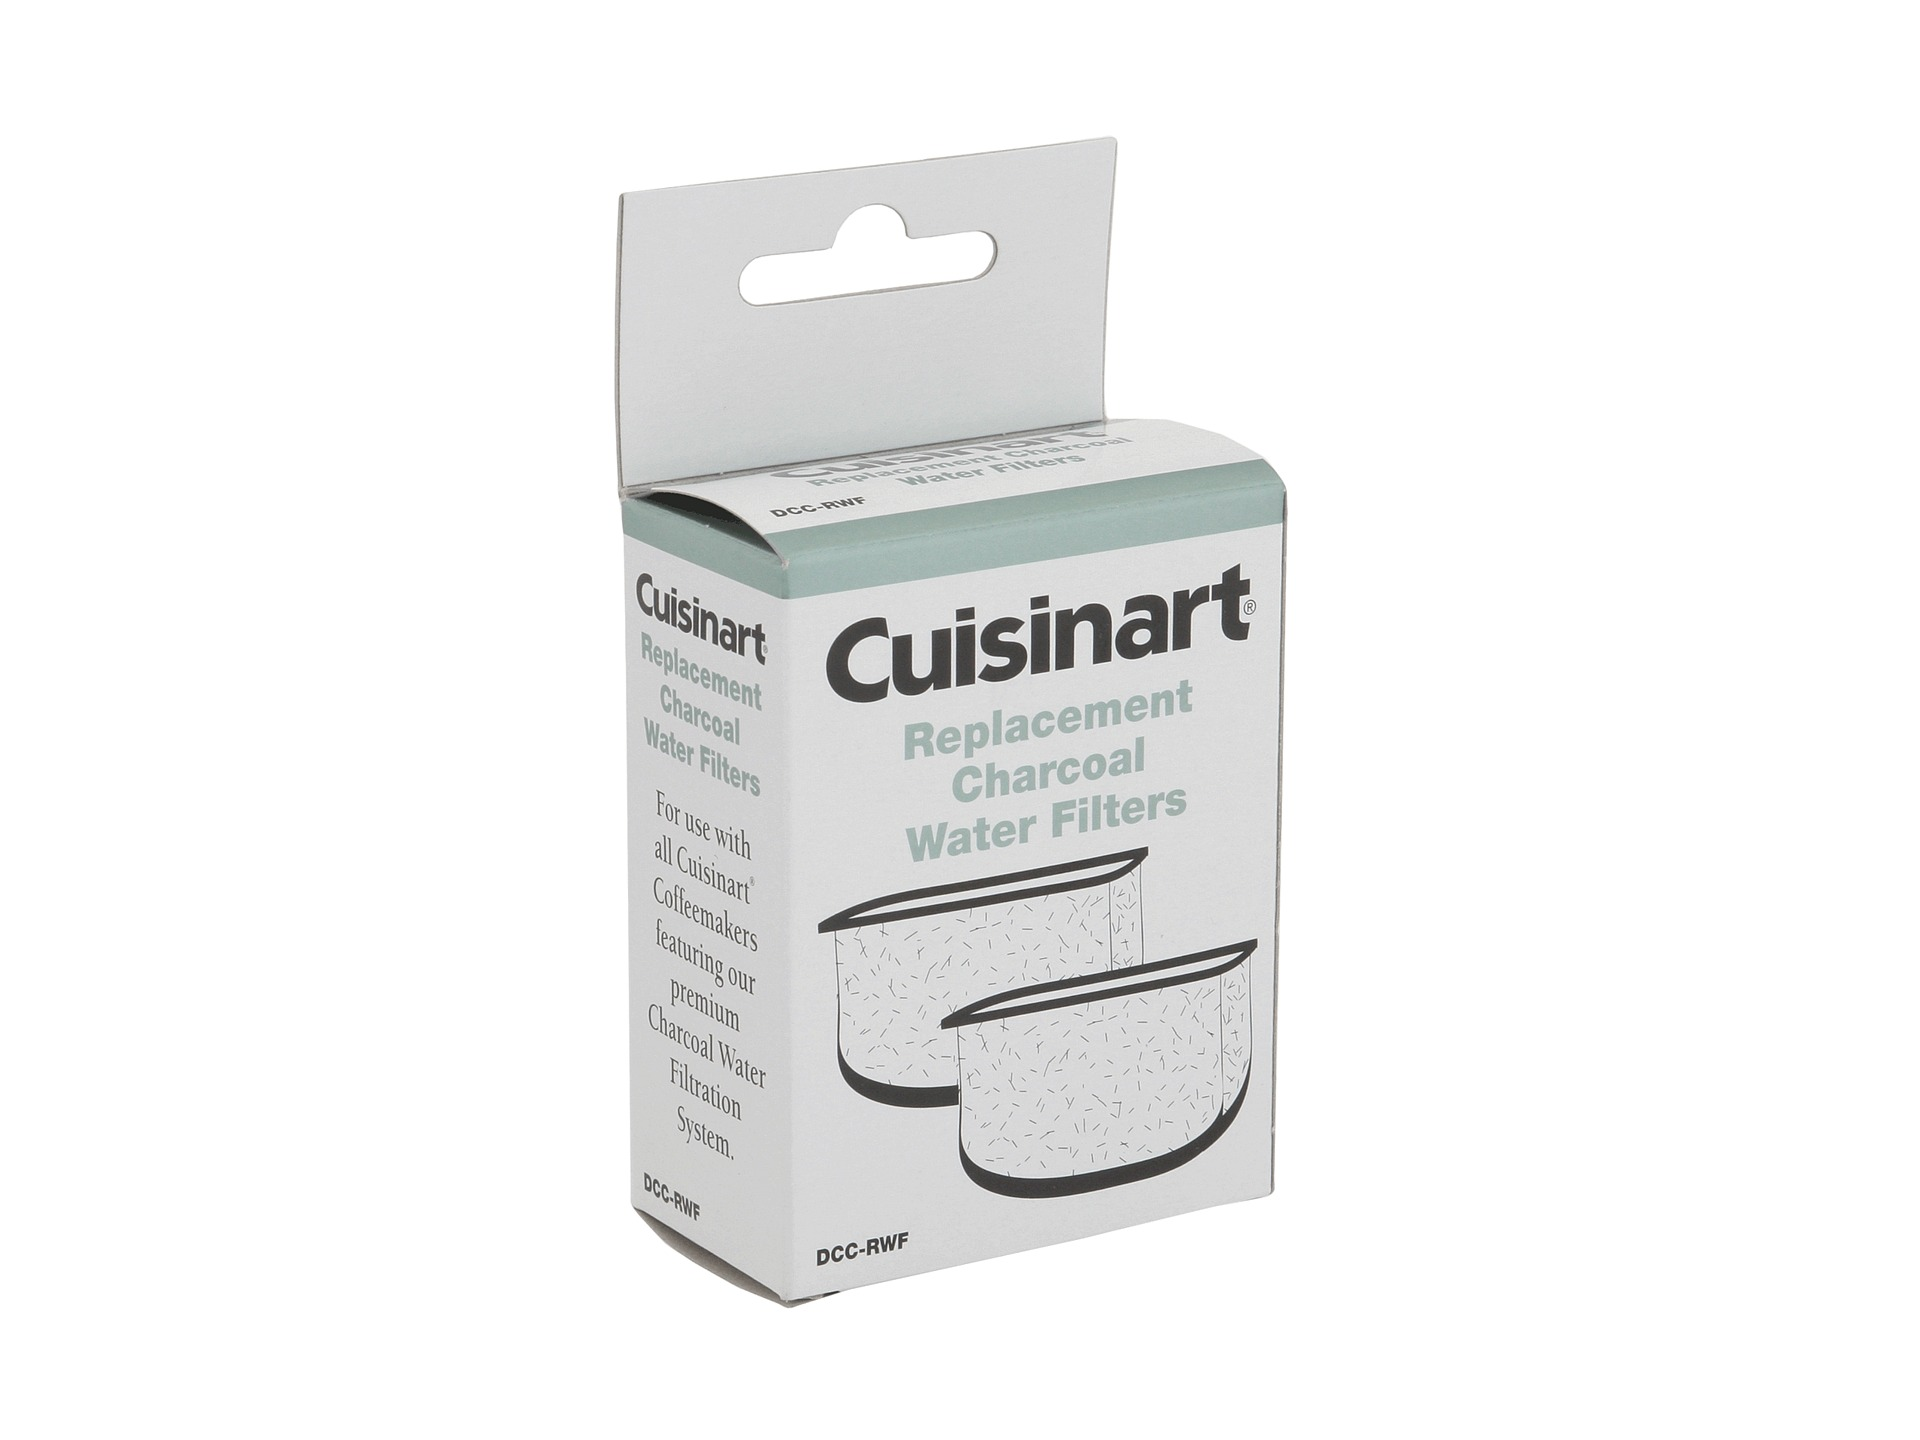 Cuisinart Coffee Maker Charcoal Filter : Cuisinart Dcc Rwf Replacement Coffee Maker Water Filters Shipped Free at Zappos